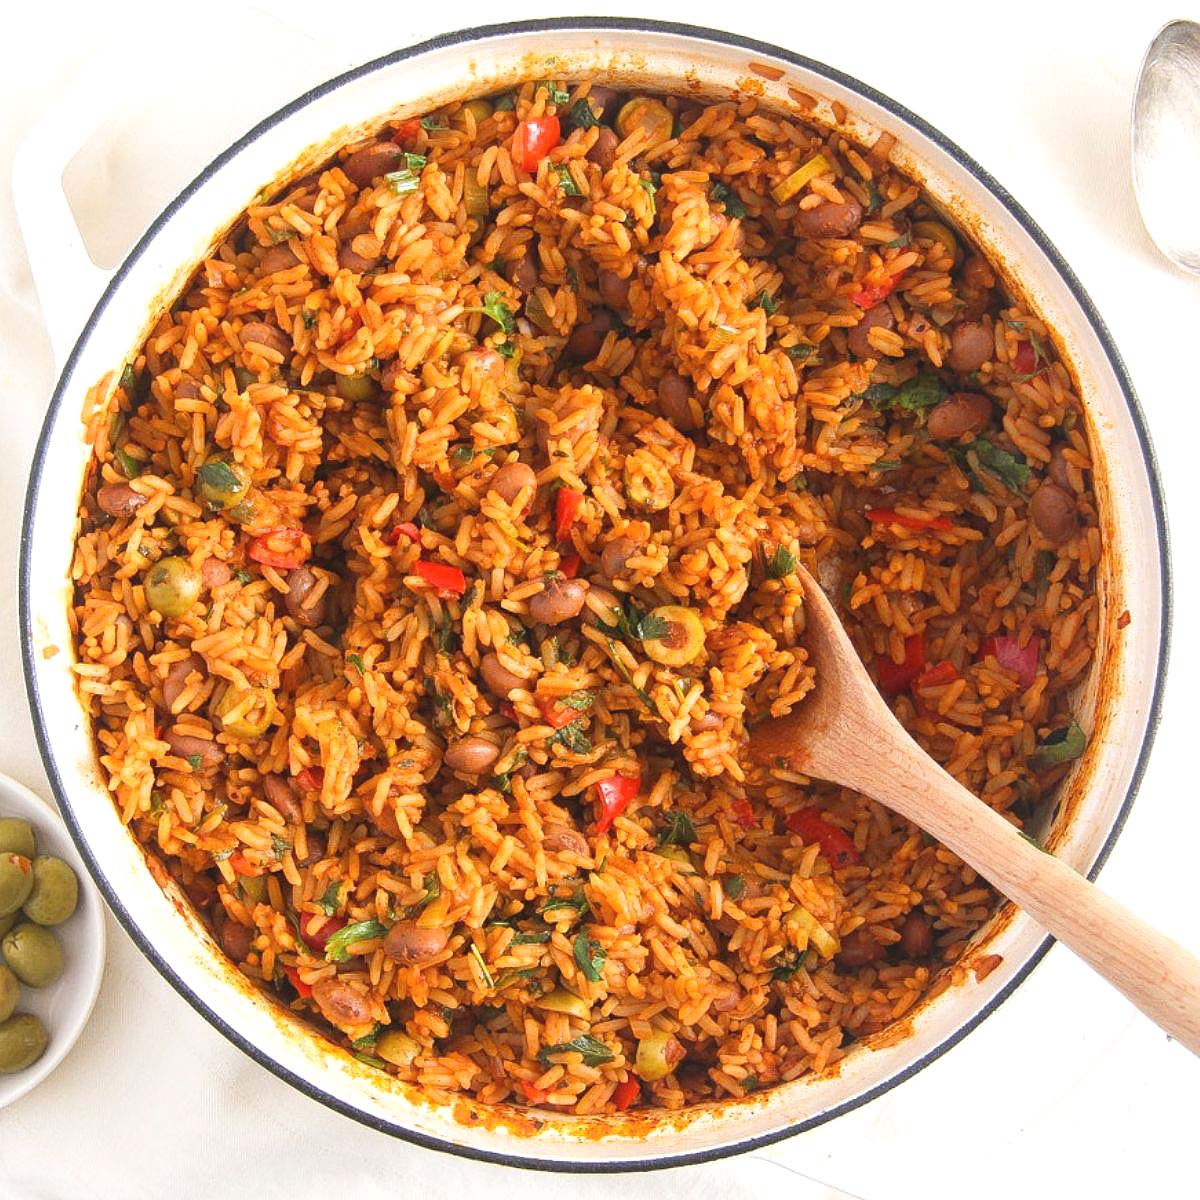 spanish rice and beans with olives and peppers in a white pot